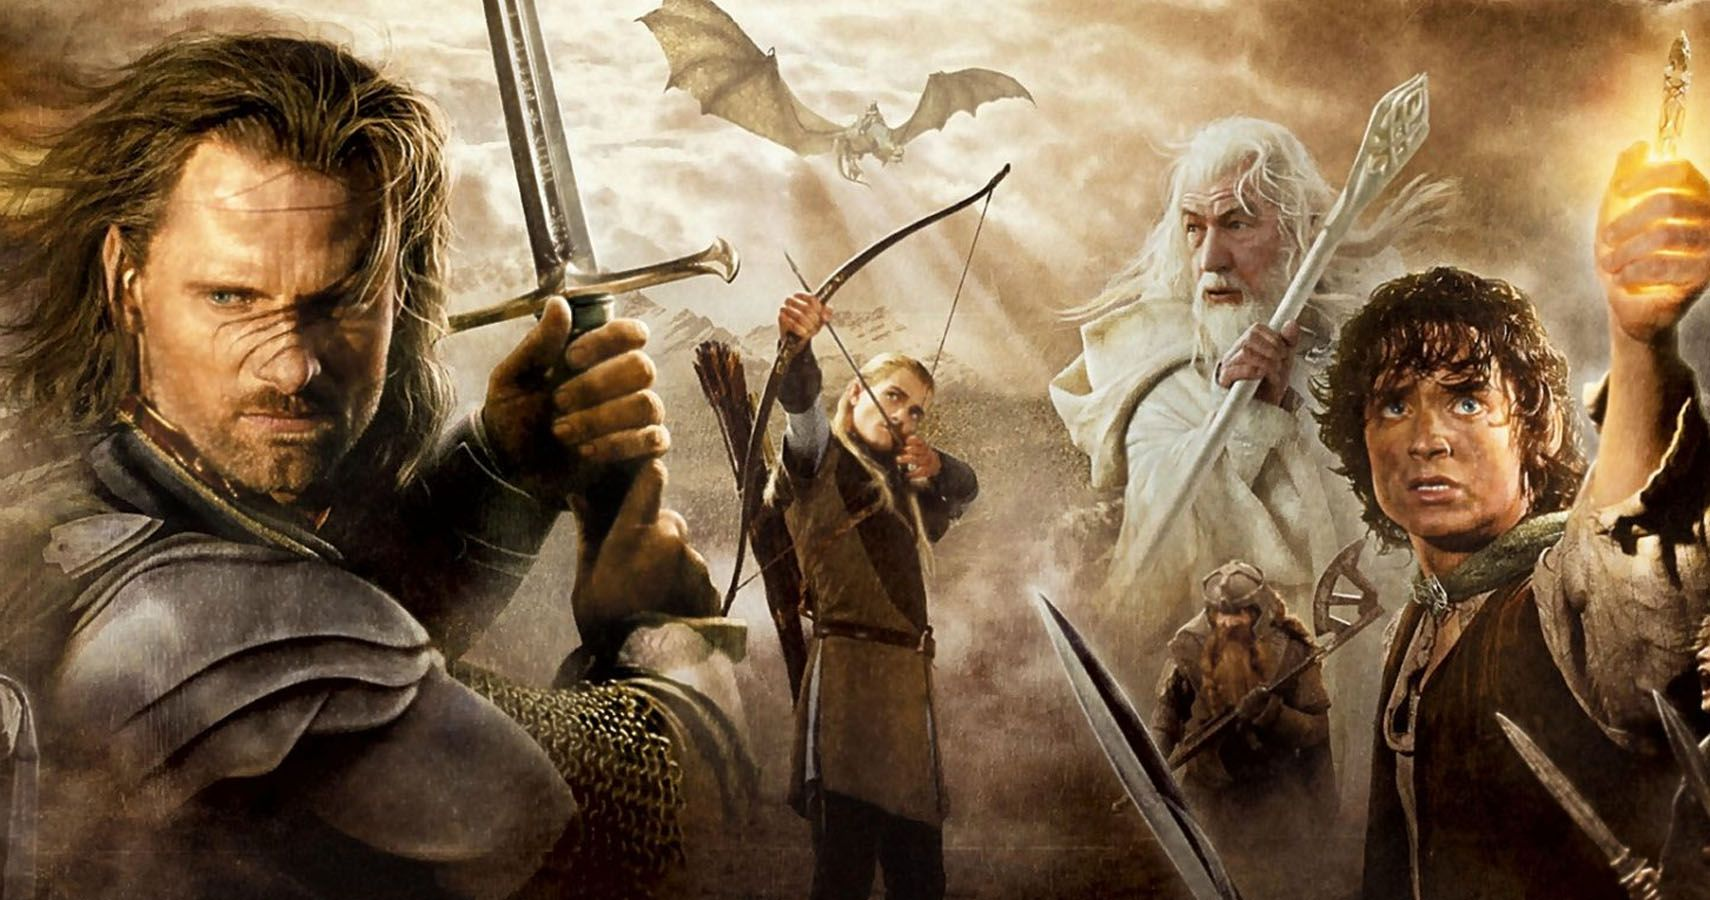 Lord of the Rings: 10 Characters That Deserved Better